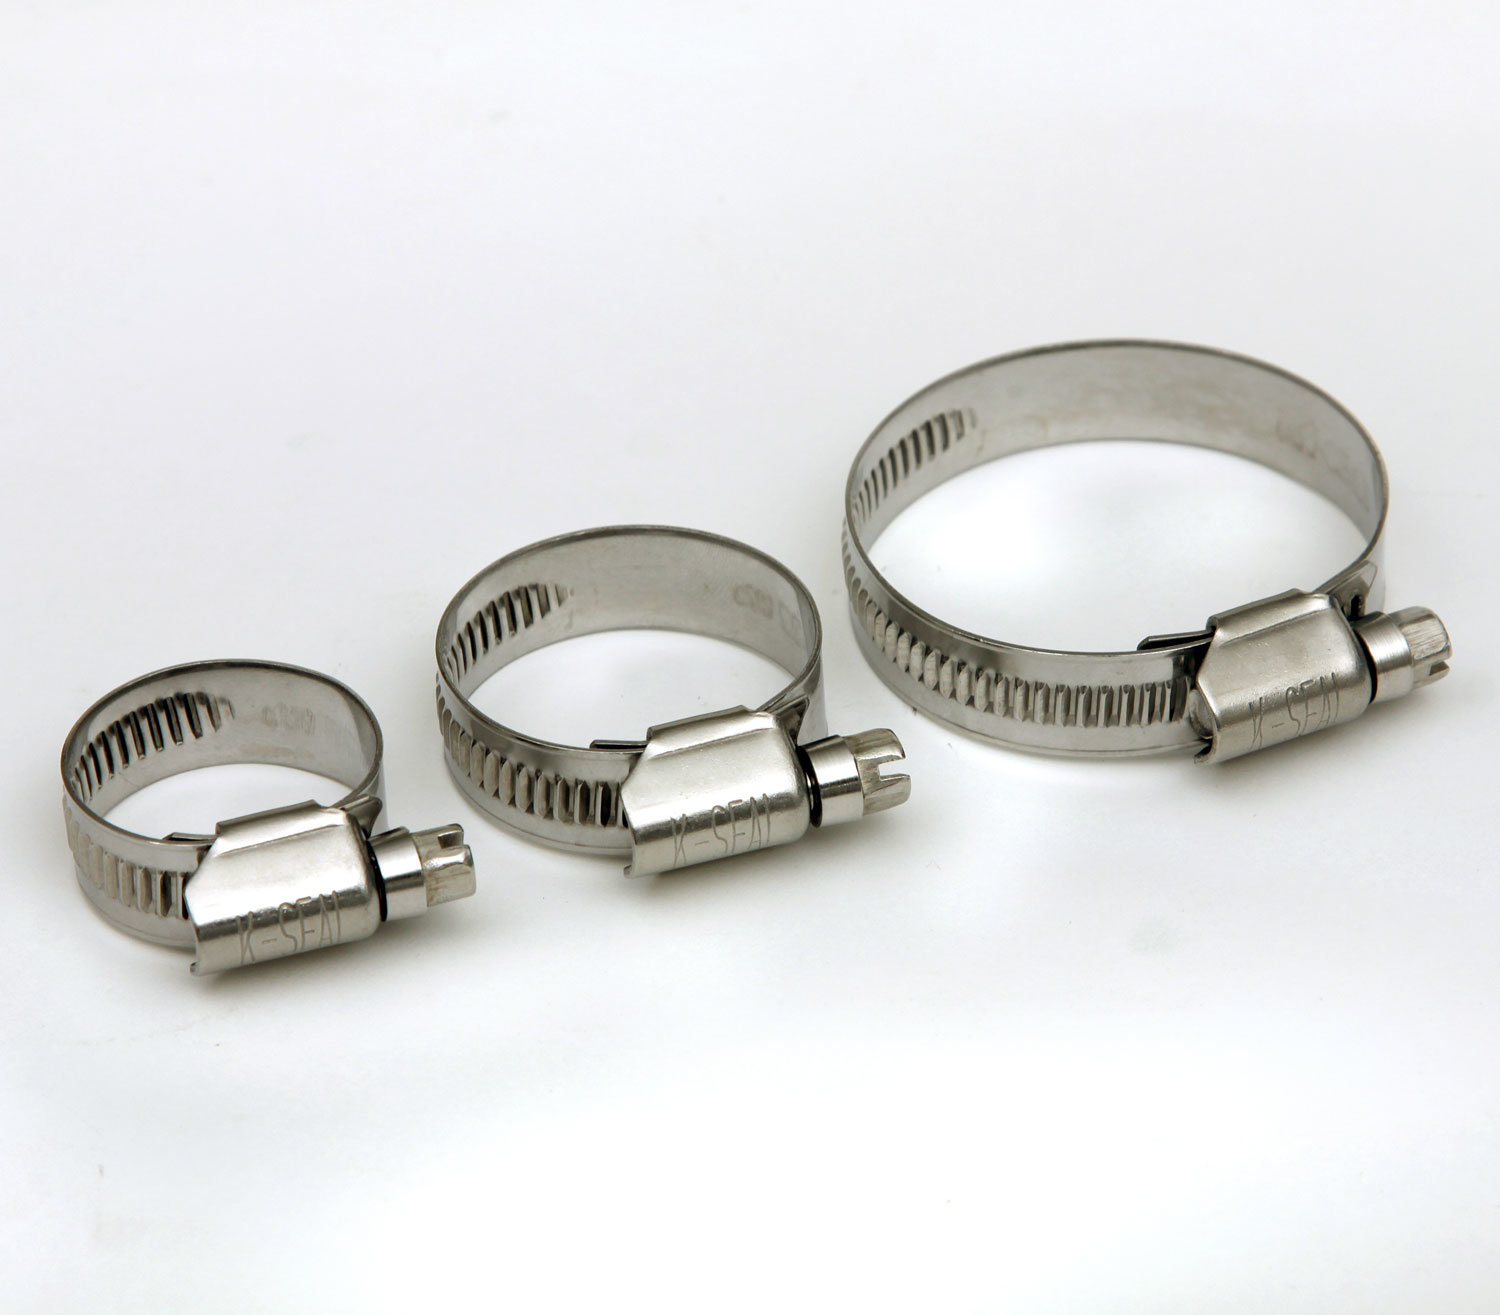 3017 Germany Type Stainless Steel Lock Ring Clamps KEB12X032 Series